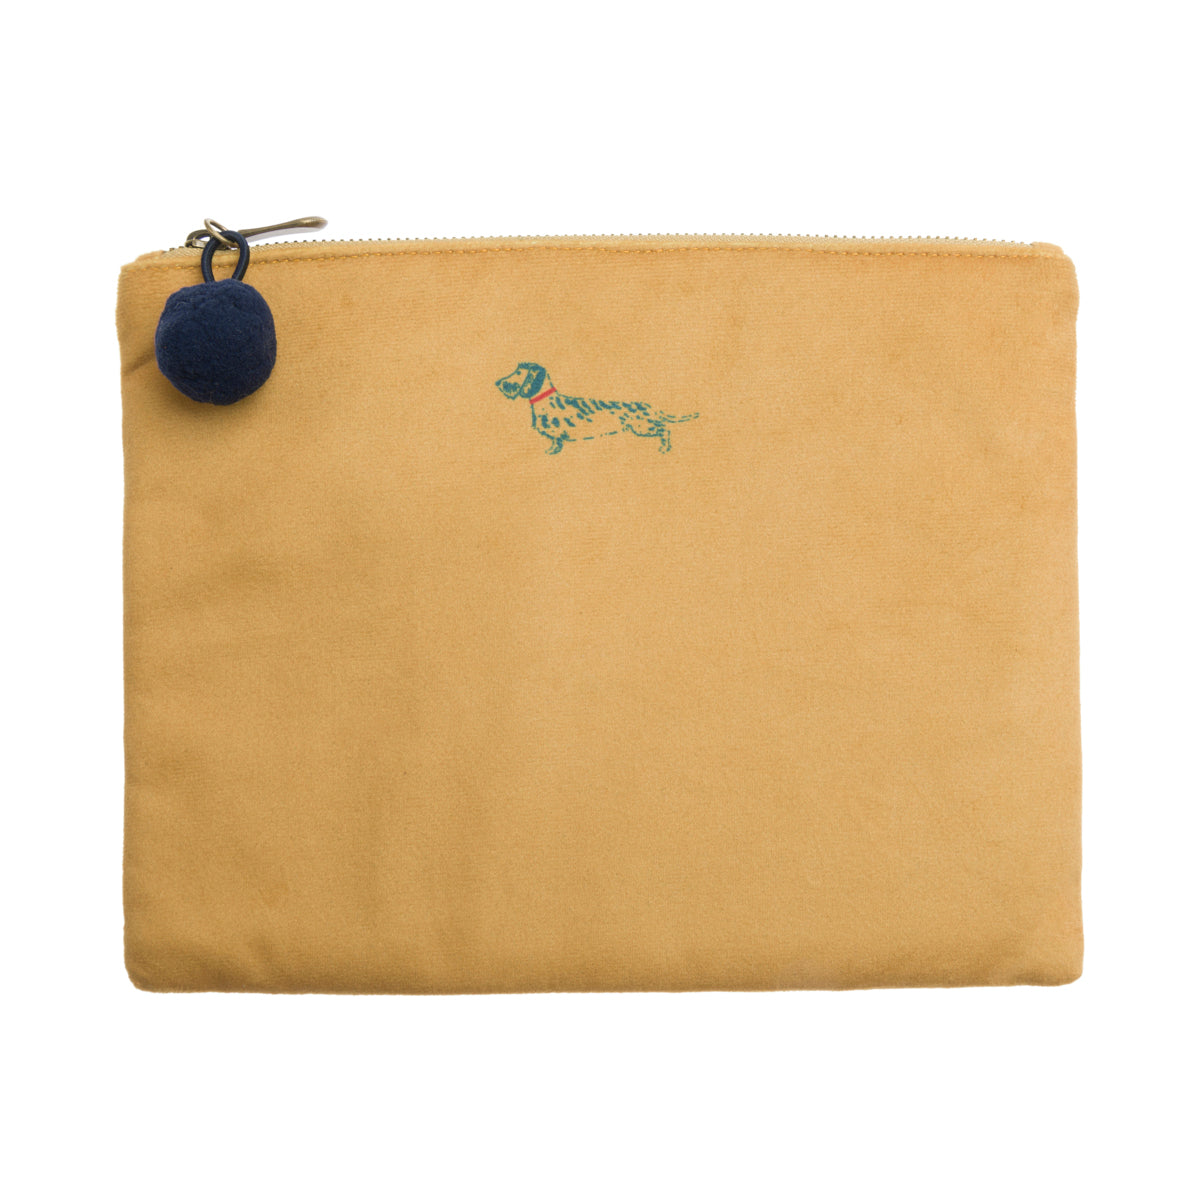 Dachshund Velvet Pouch in mustard yellow colour